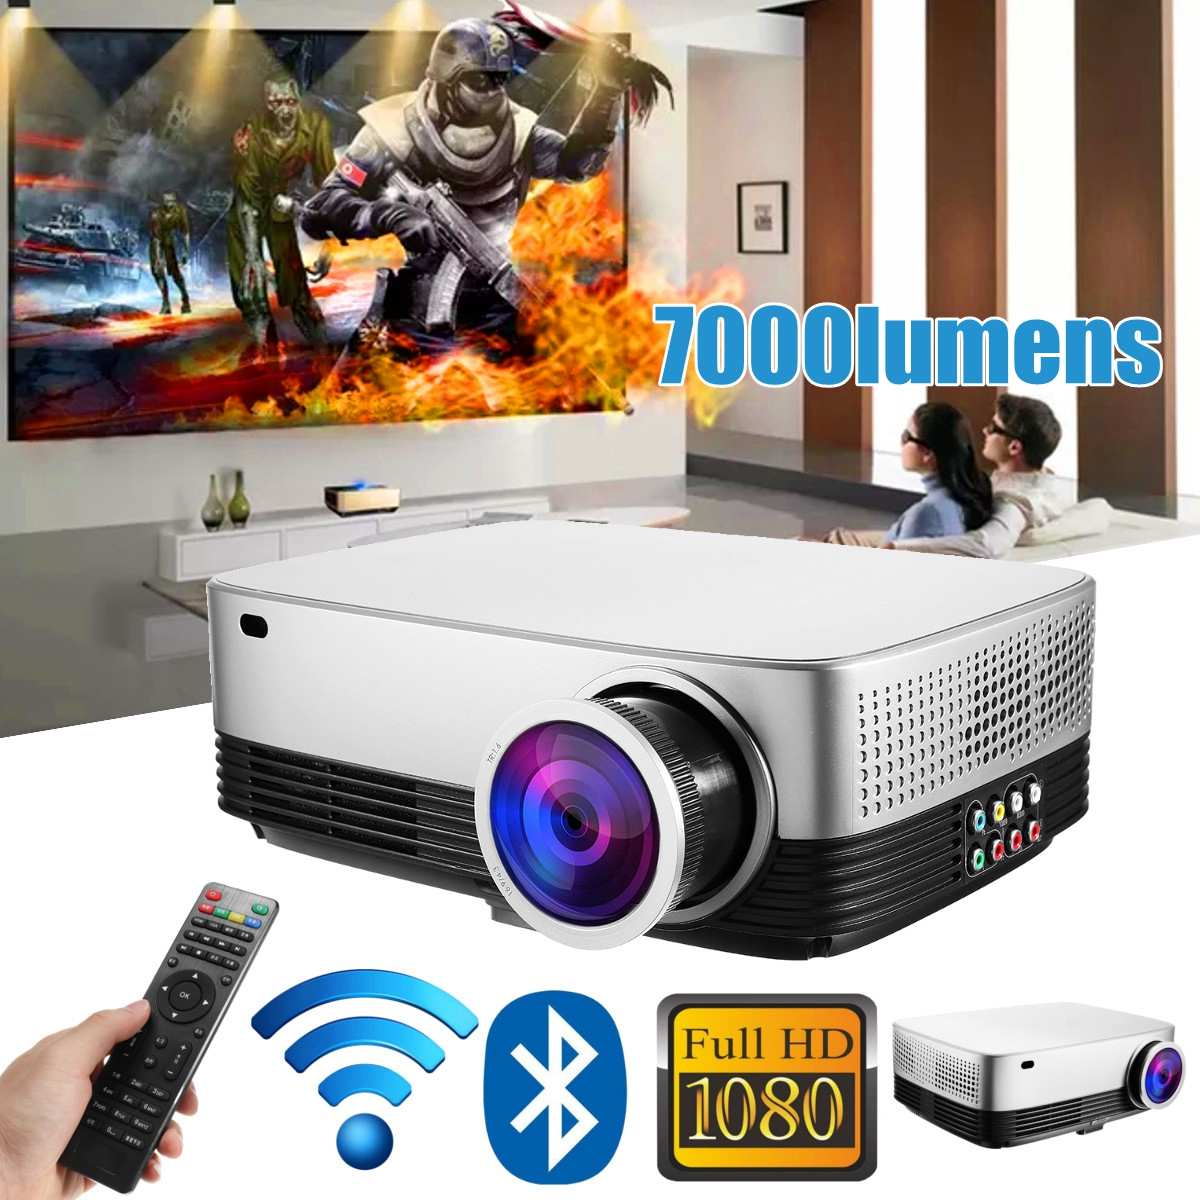 Portable LCD Projector Home Cinema Theater Movie wifi bluetooth LED Proyector HD Mini Projectors Support 1080P <font><b>7000</b></font> <font><b>Lumens</b></font> image